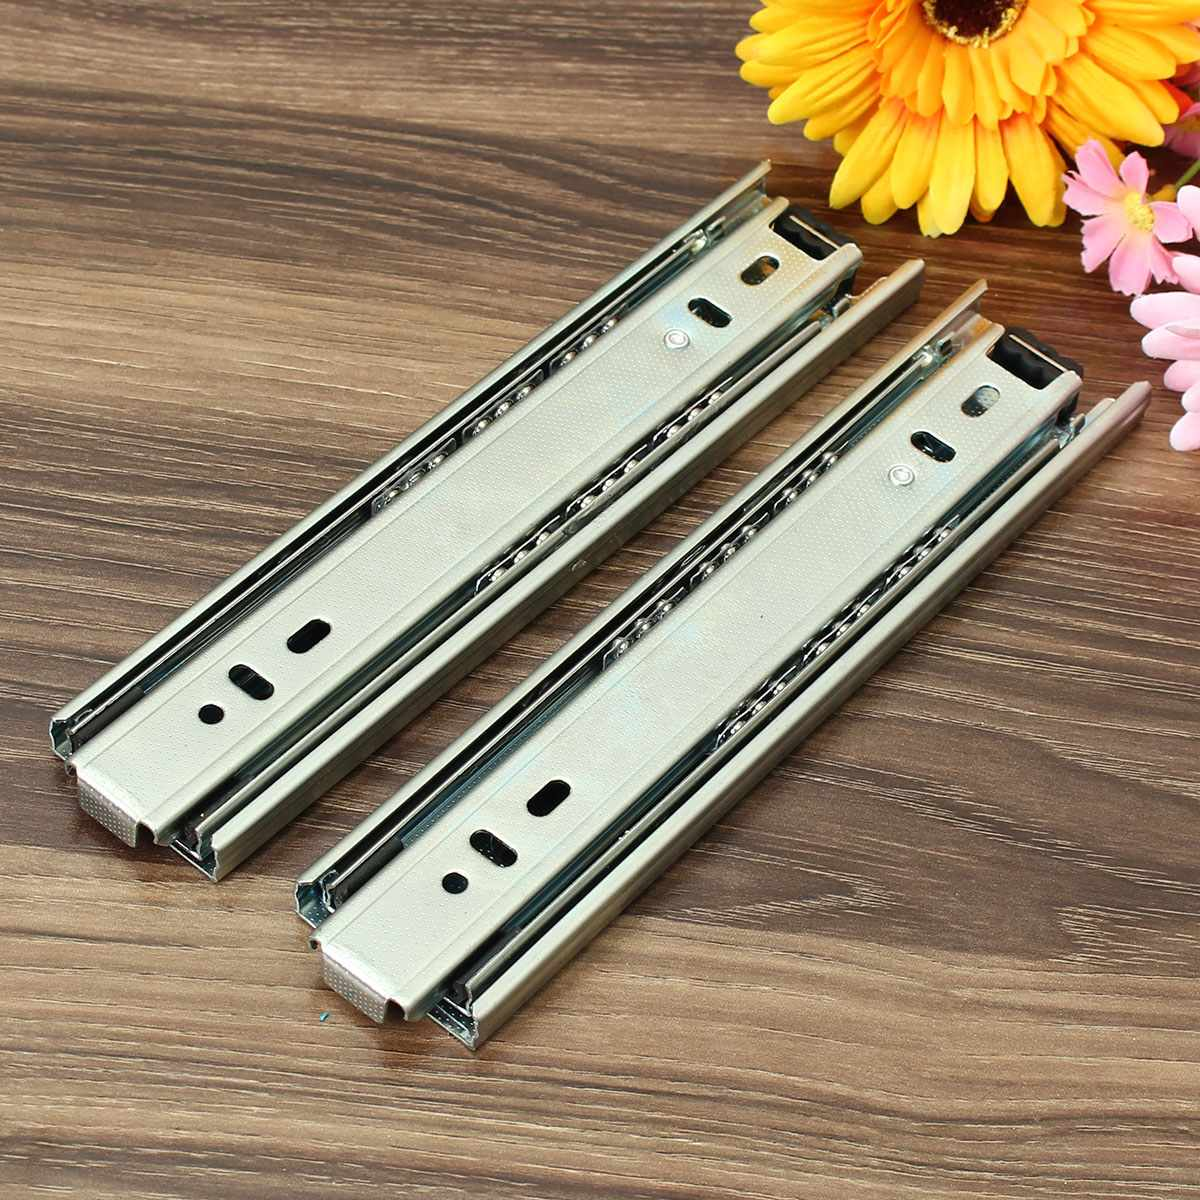 Compare Prices on Cabinet Sliders- Online Shopping/Buy Low Price ...